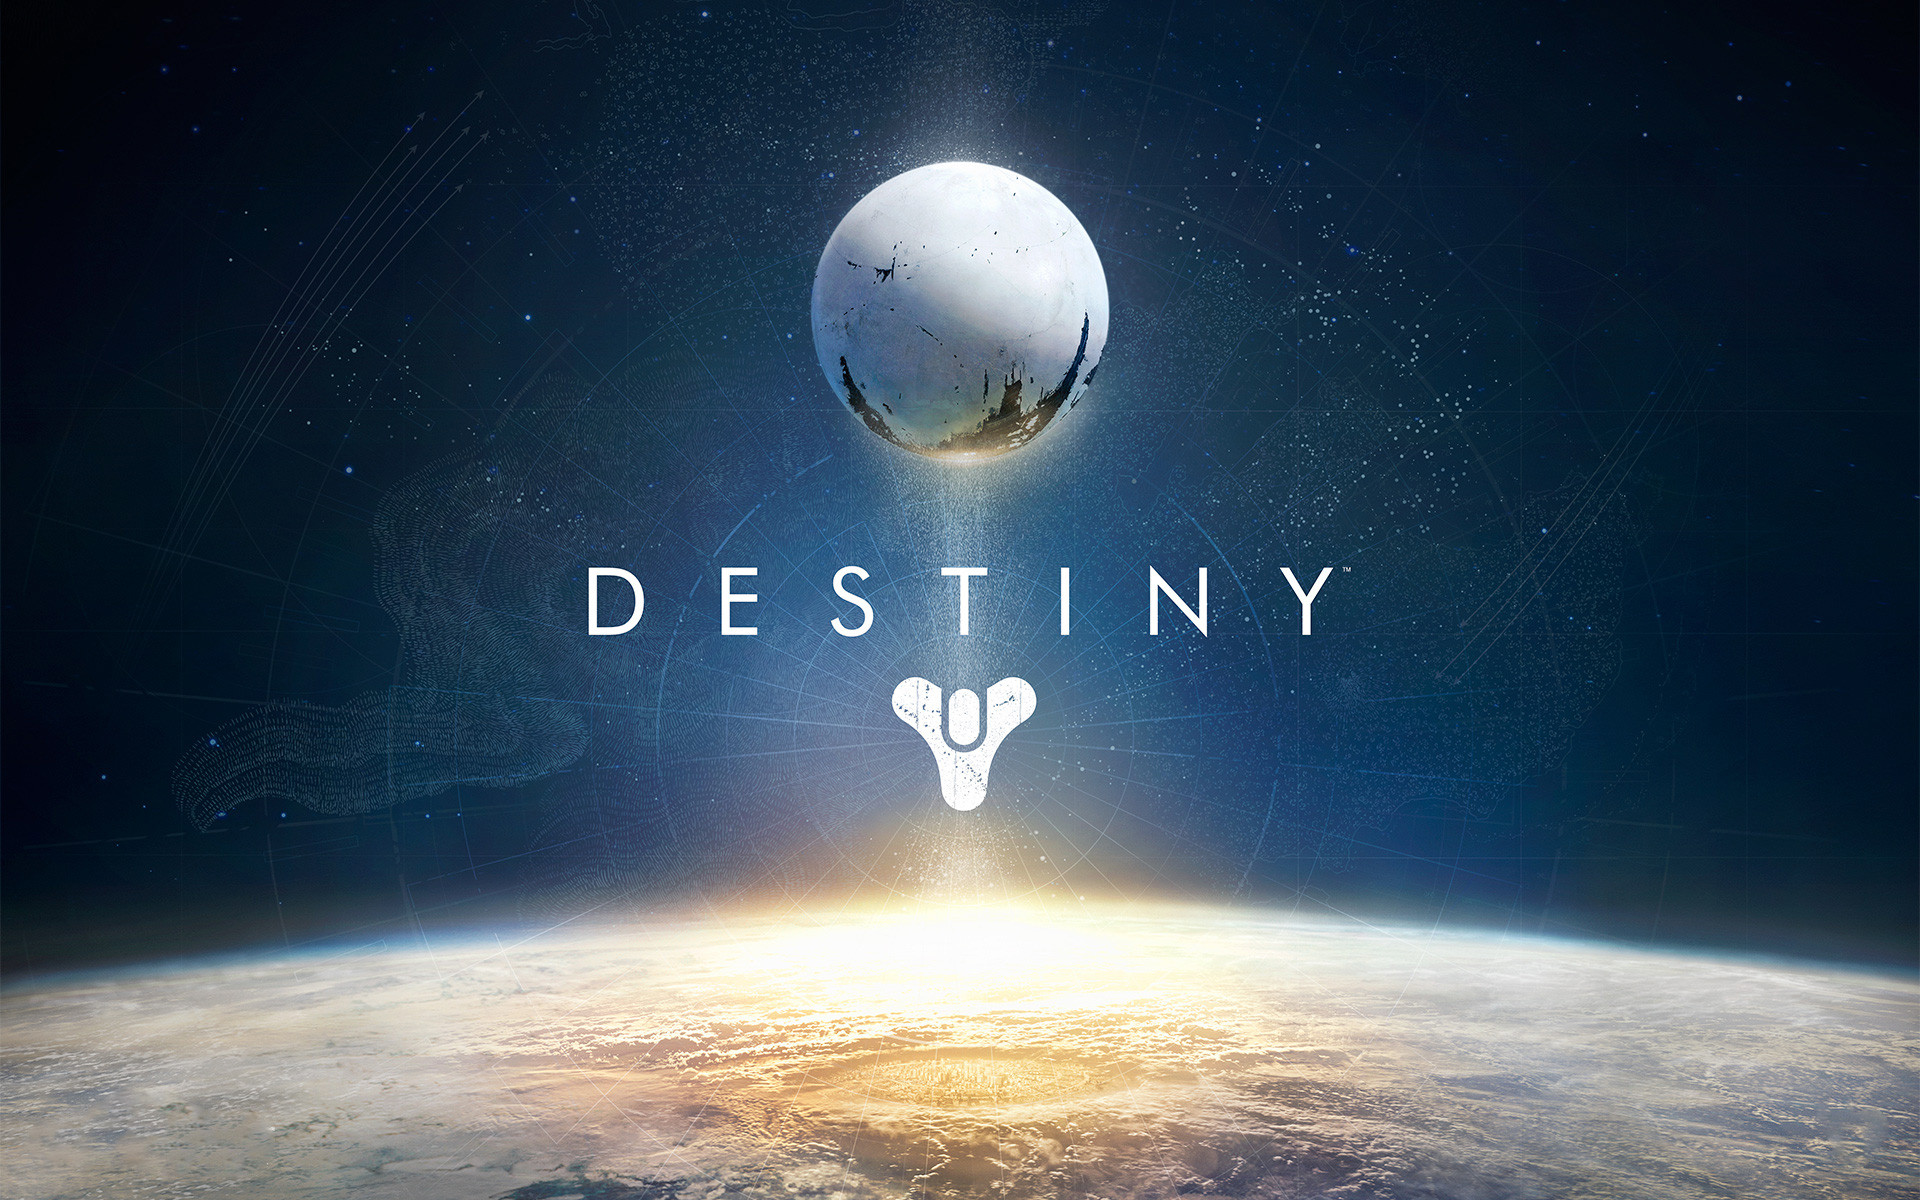 Destiny HD Desktop Wallpapers for K Ultra HD